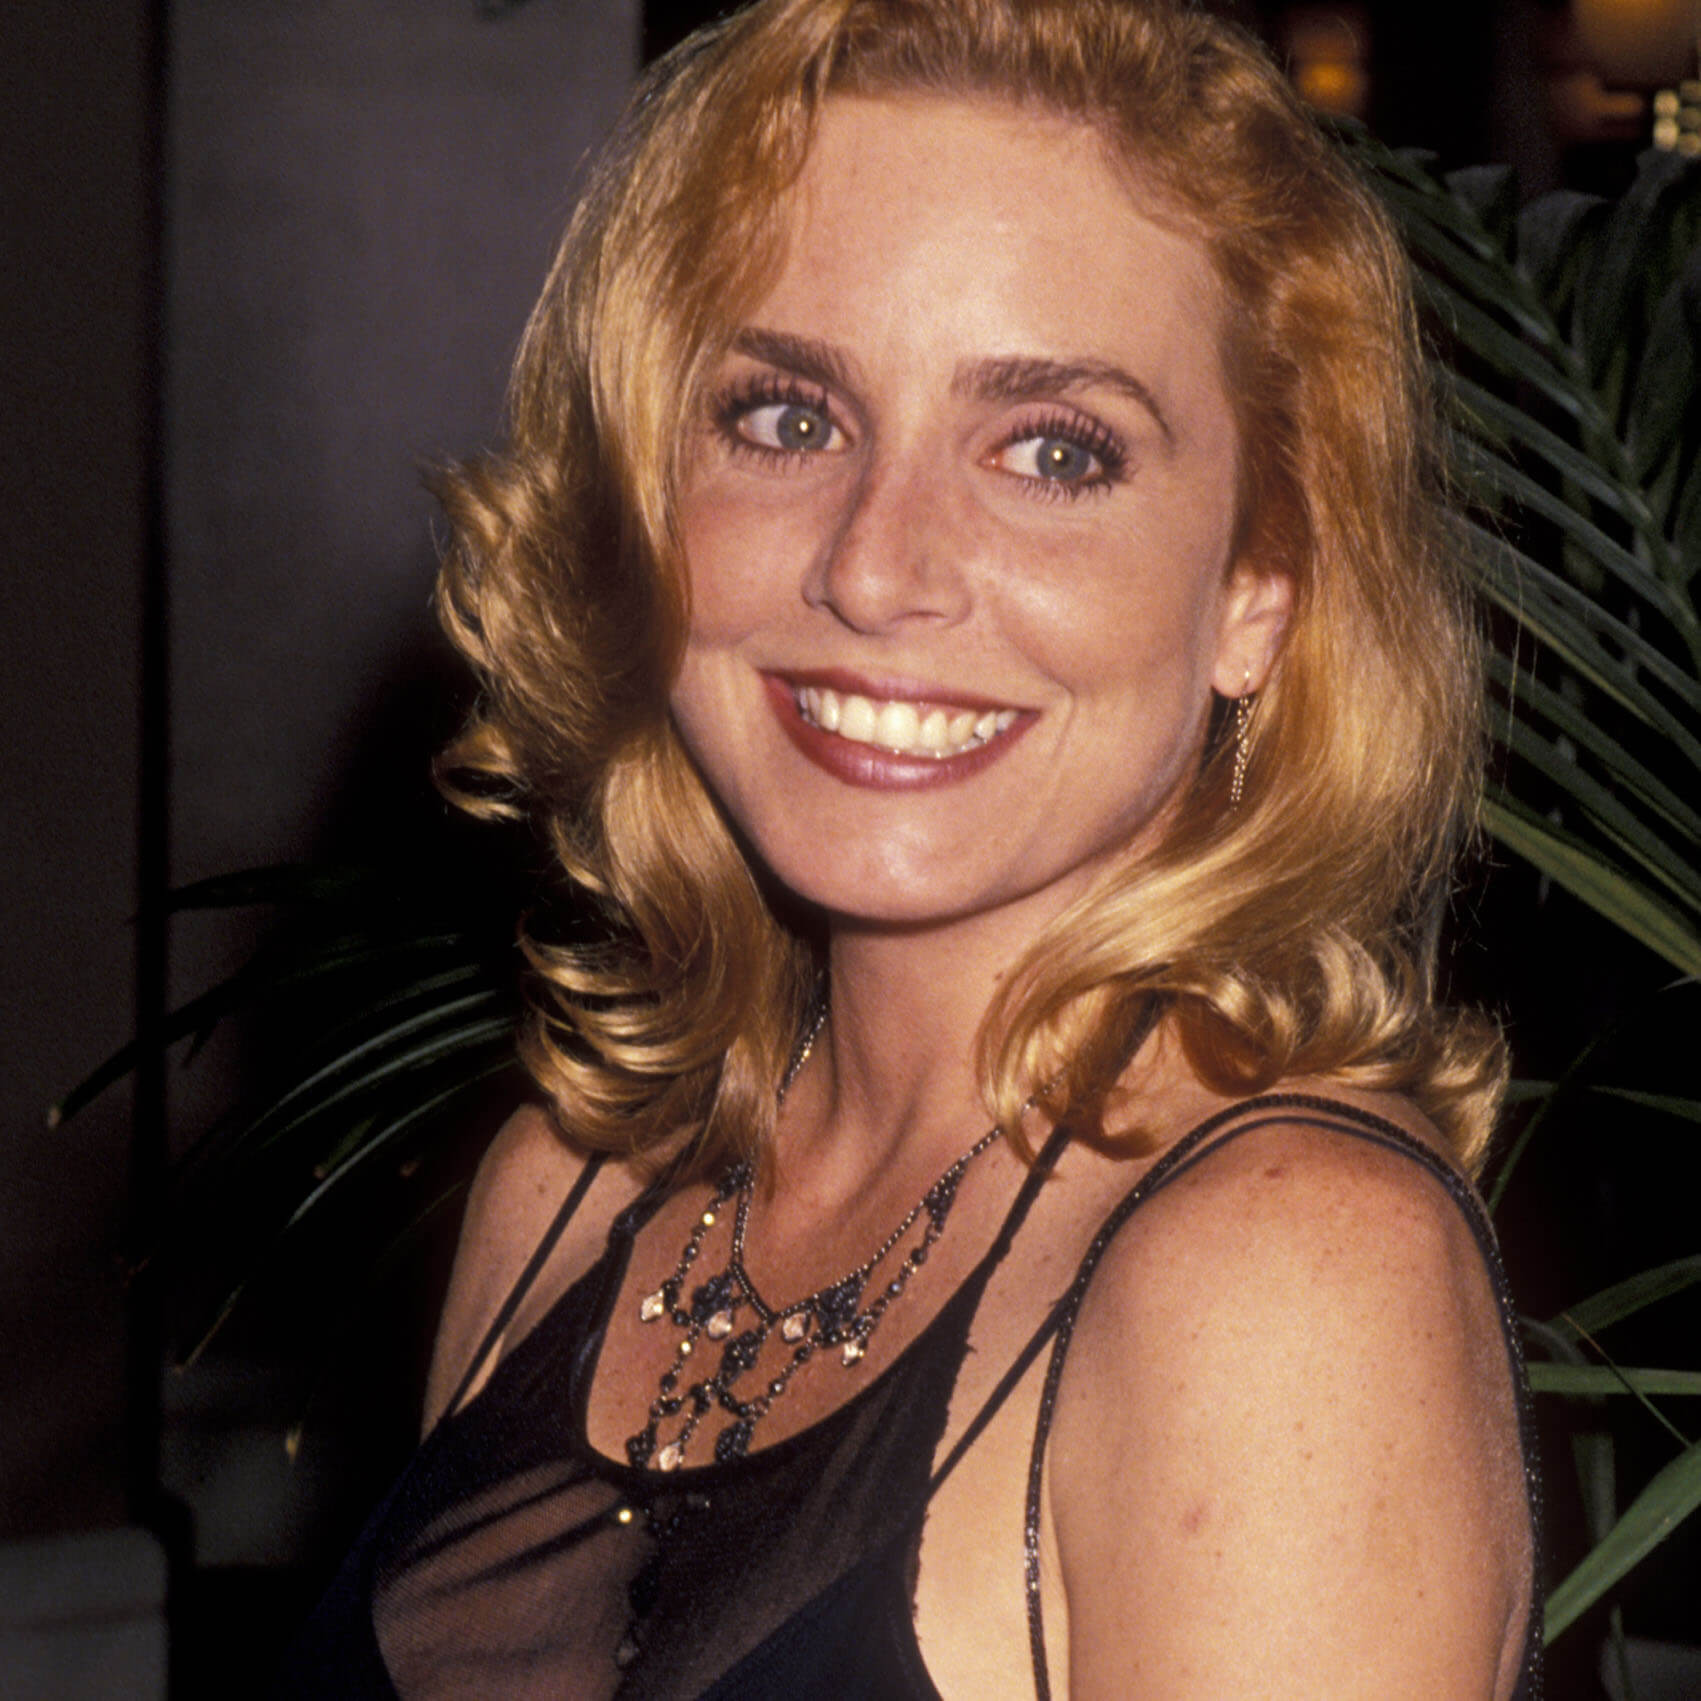 Dana Plato nude photos 2019